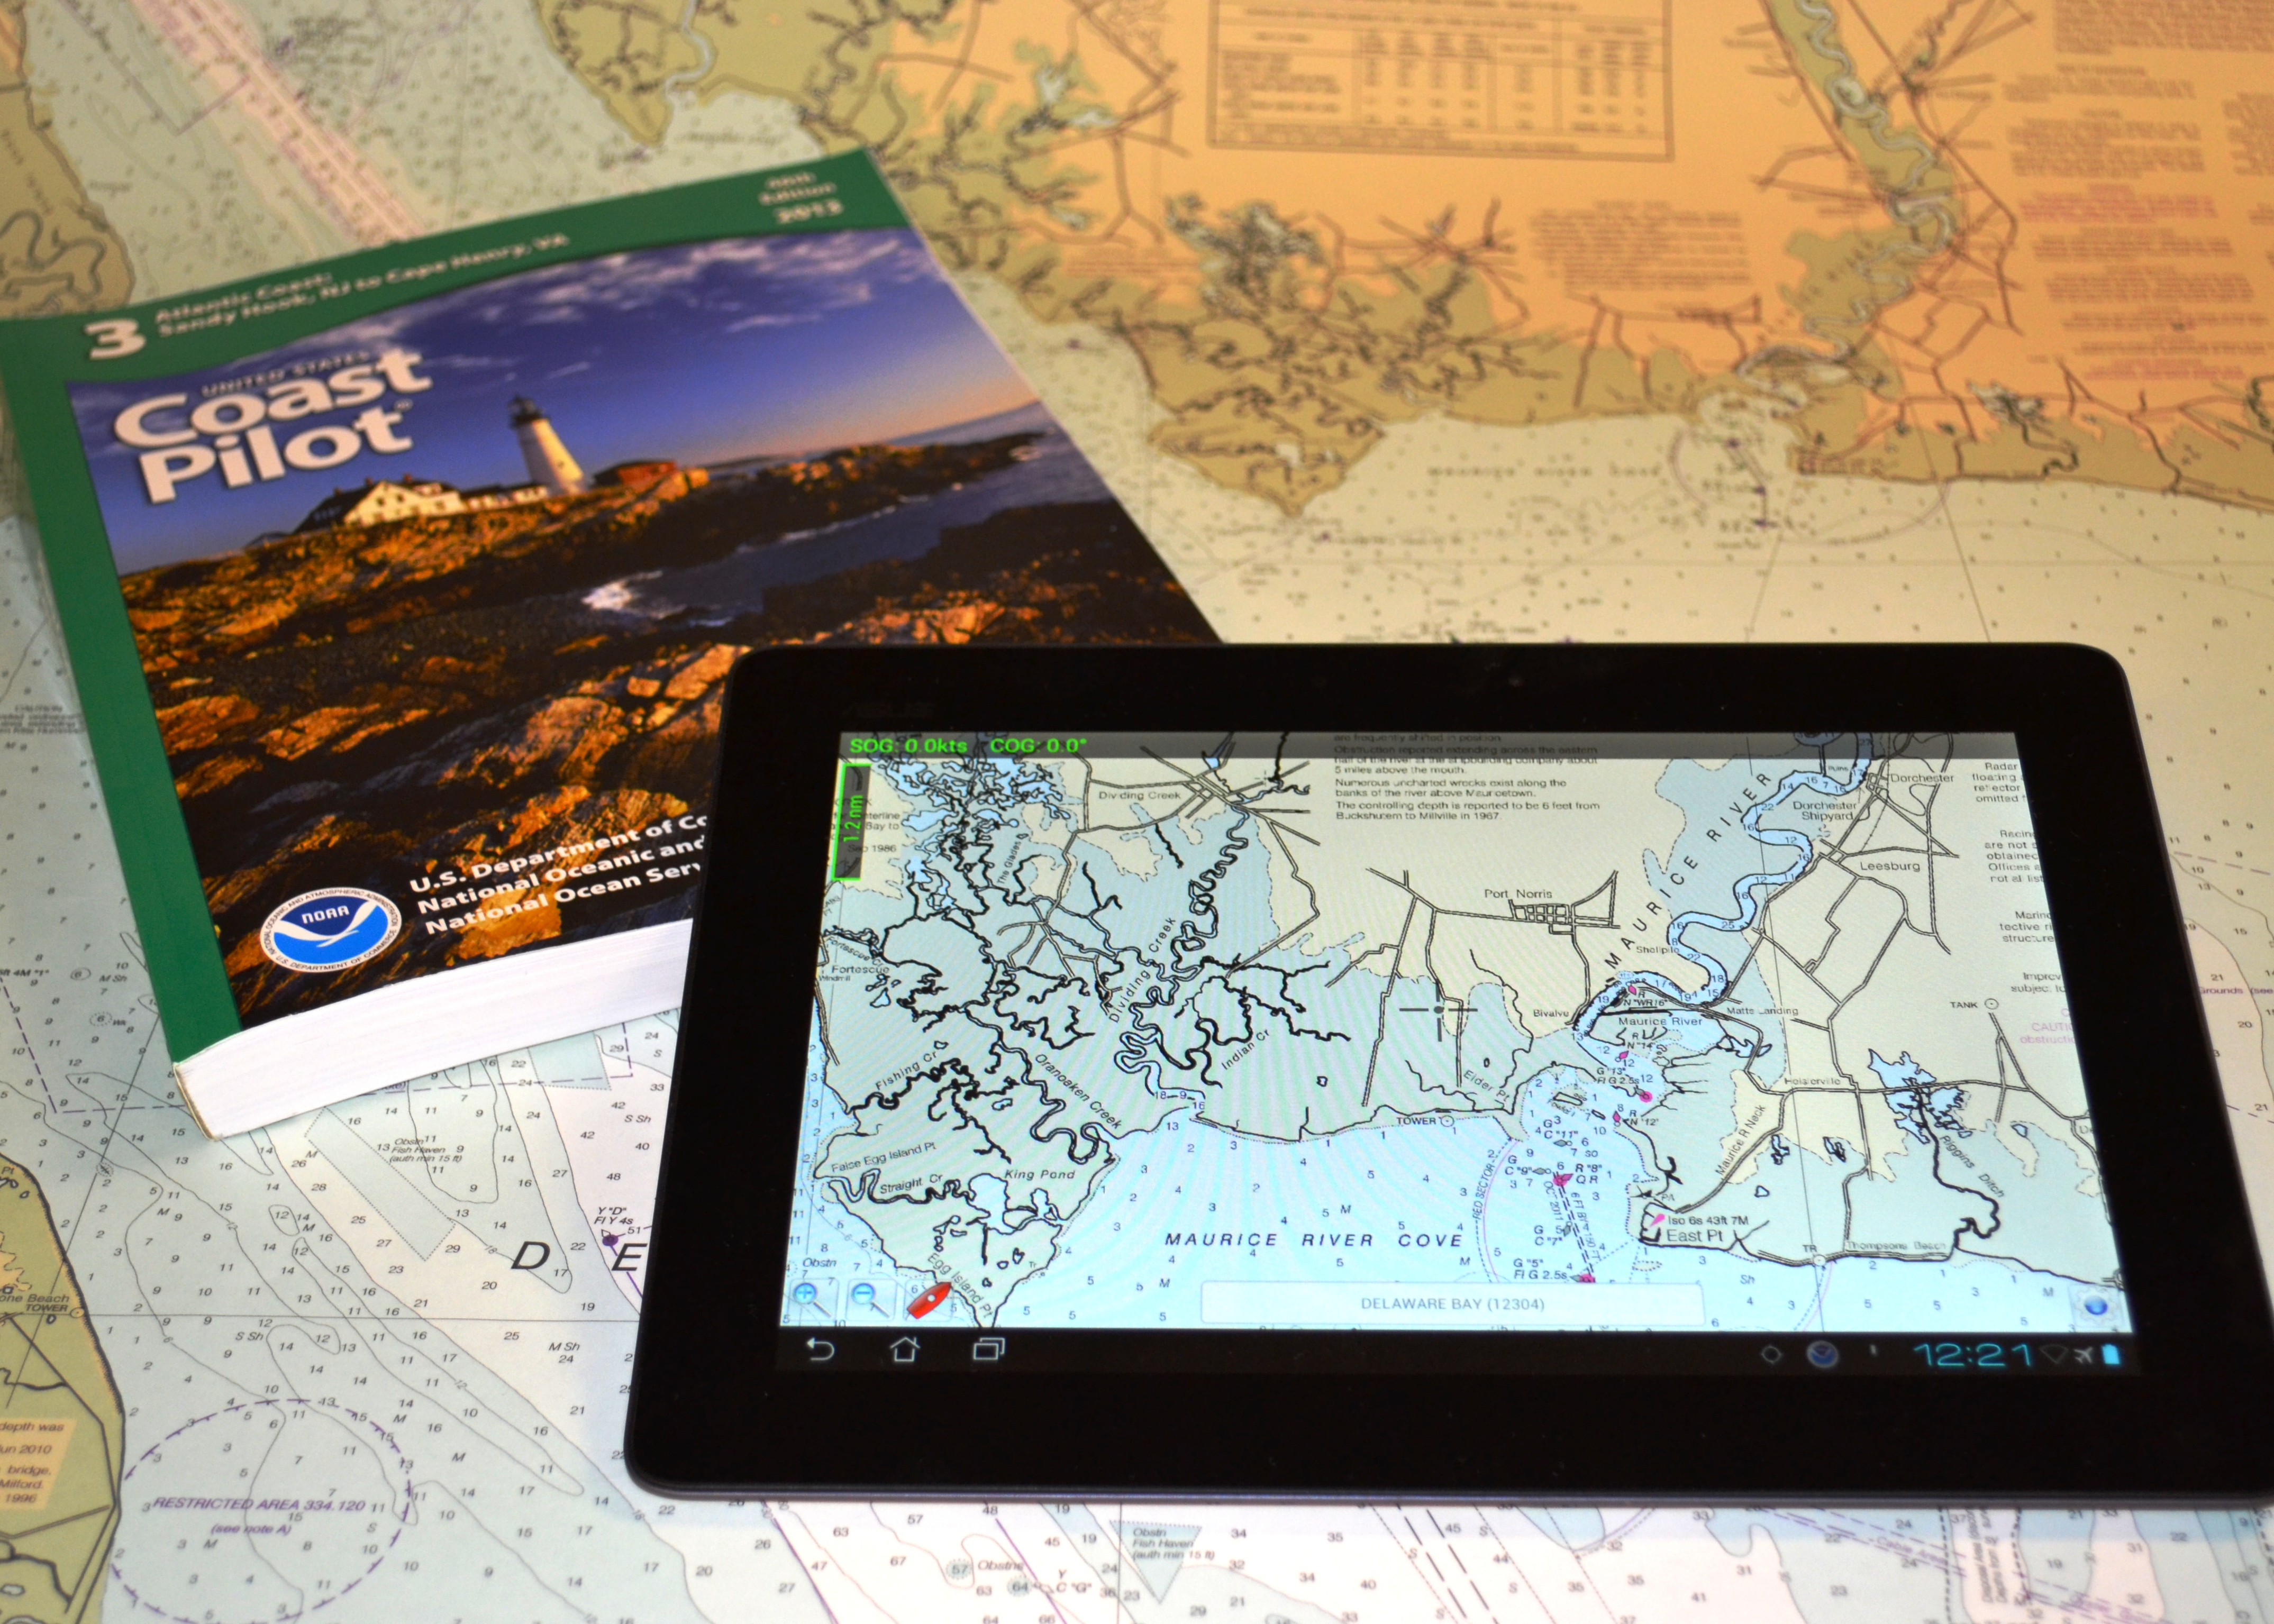 NOAA's latest mobile app provides free nautical charts for